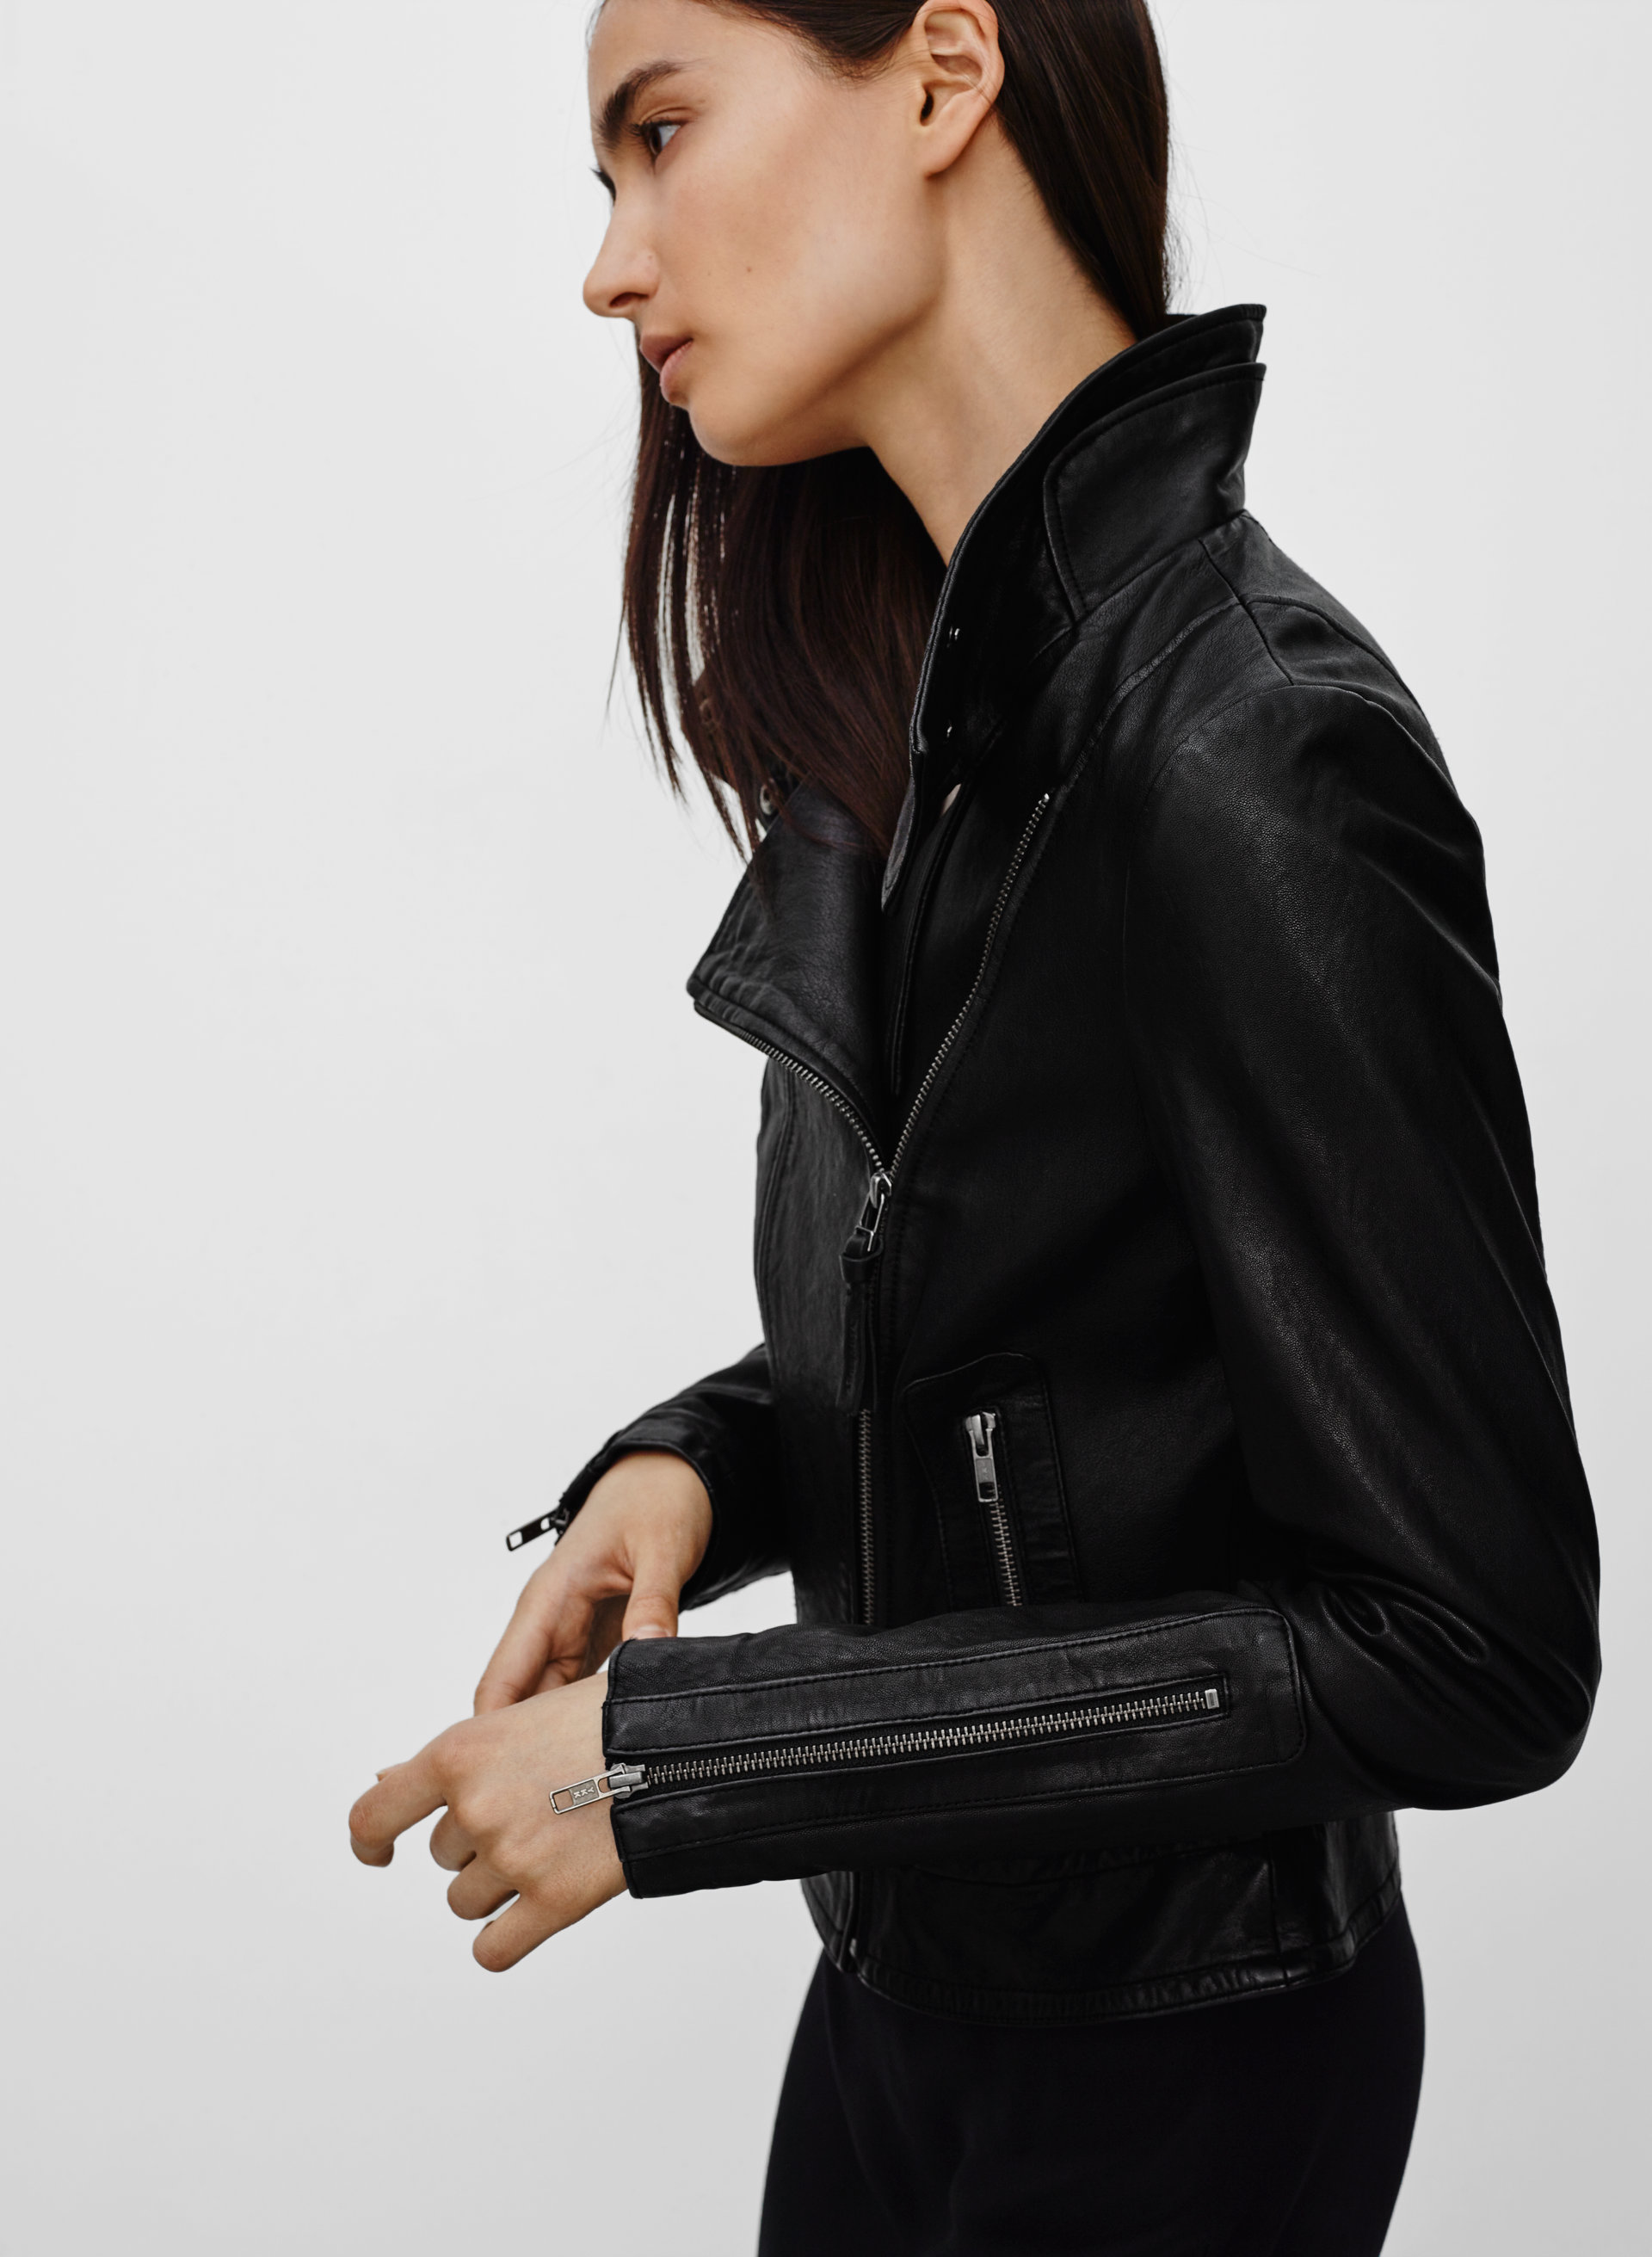 Leather jacket kenya